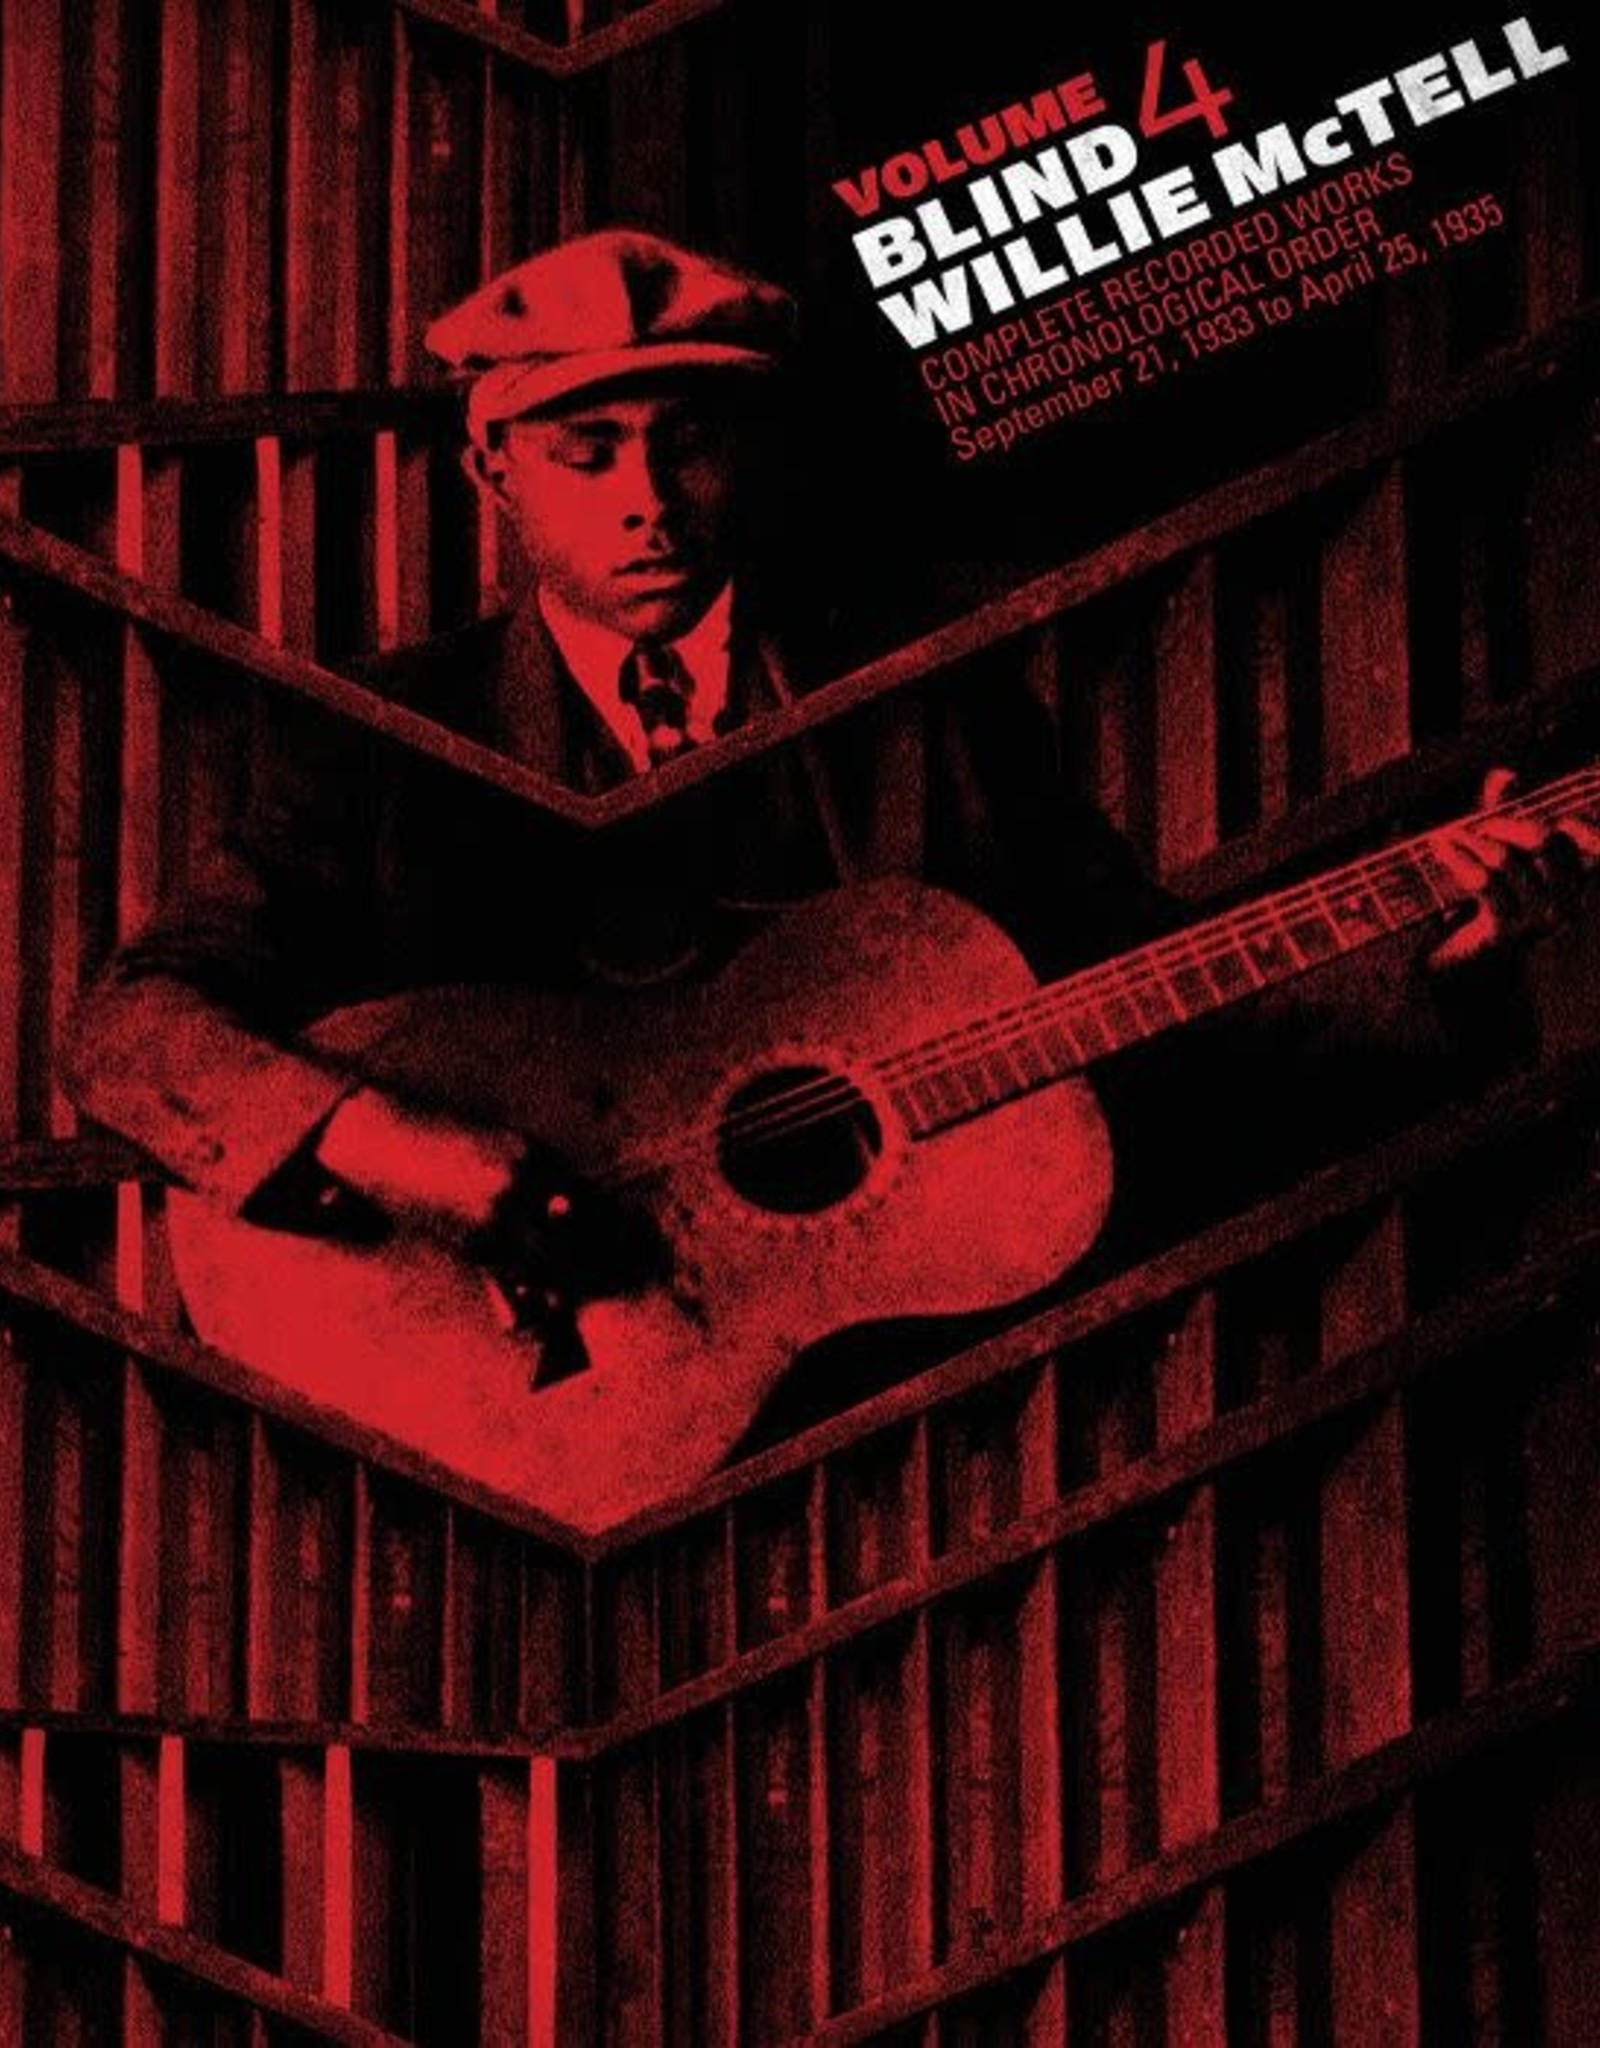 "Records BLIND WILLIE MCTELL - The Complete Recorded Works in Chronological Order Volume 4 (12"" VINYL)"